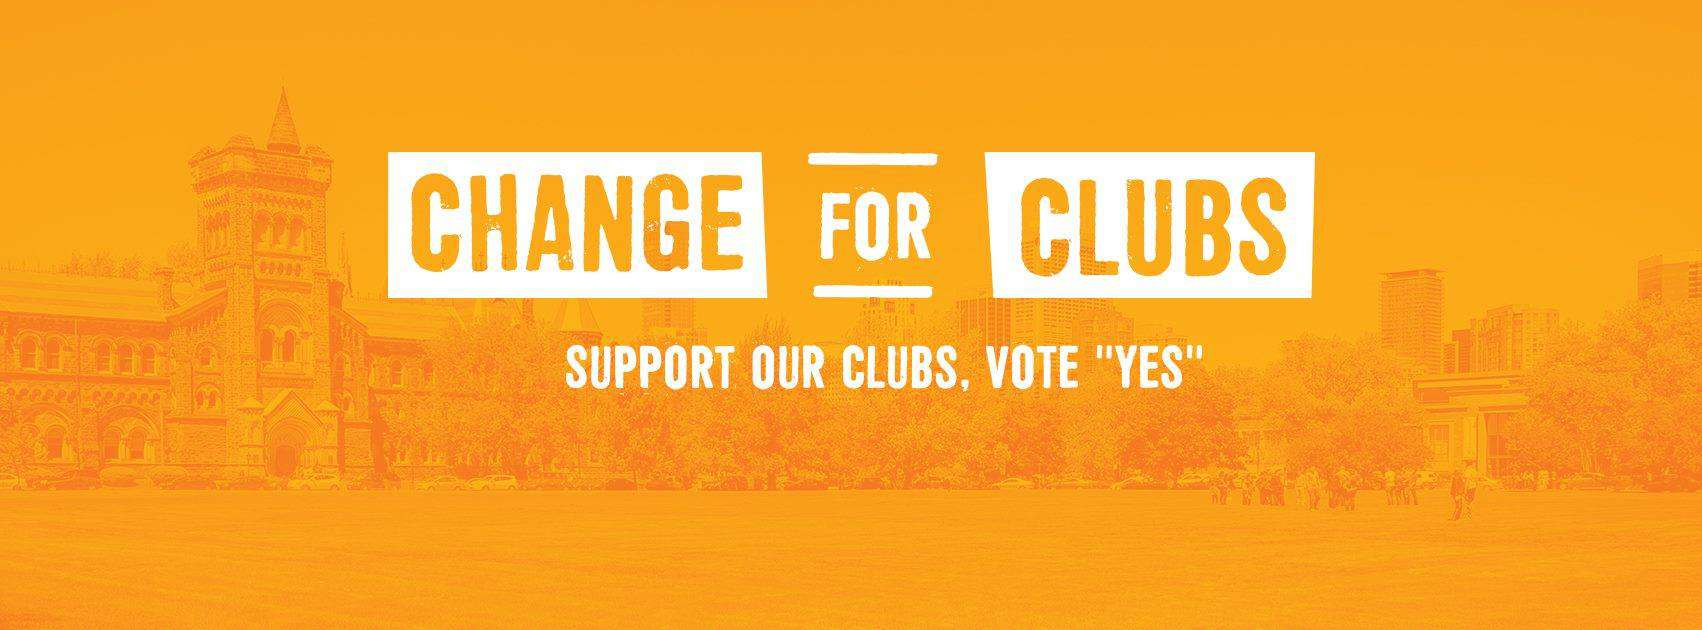 Online promotional material for Change for Clubs, the 'Yes' campaign for the referendum. VIA FACEBOOK